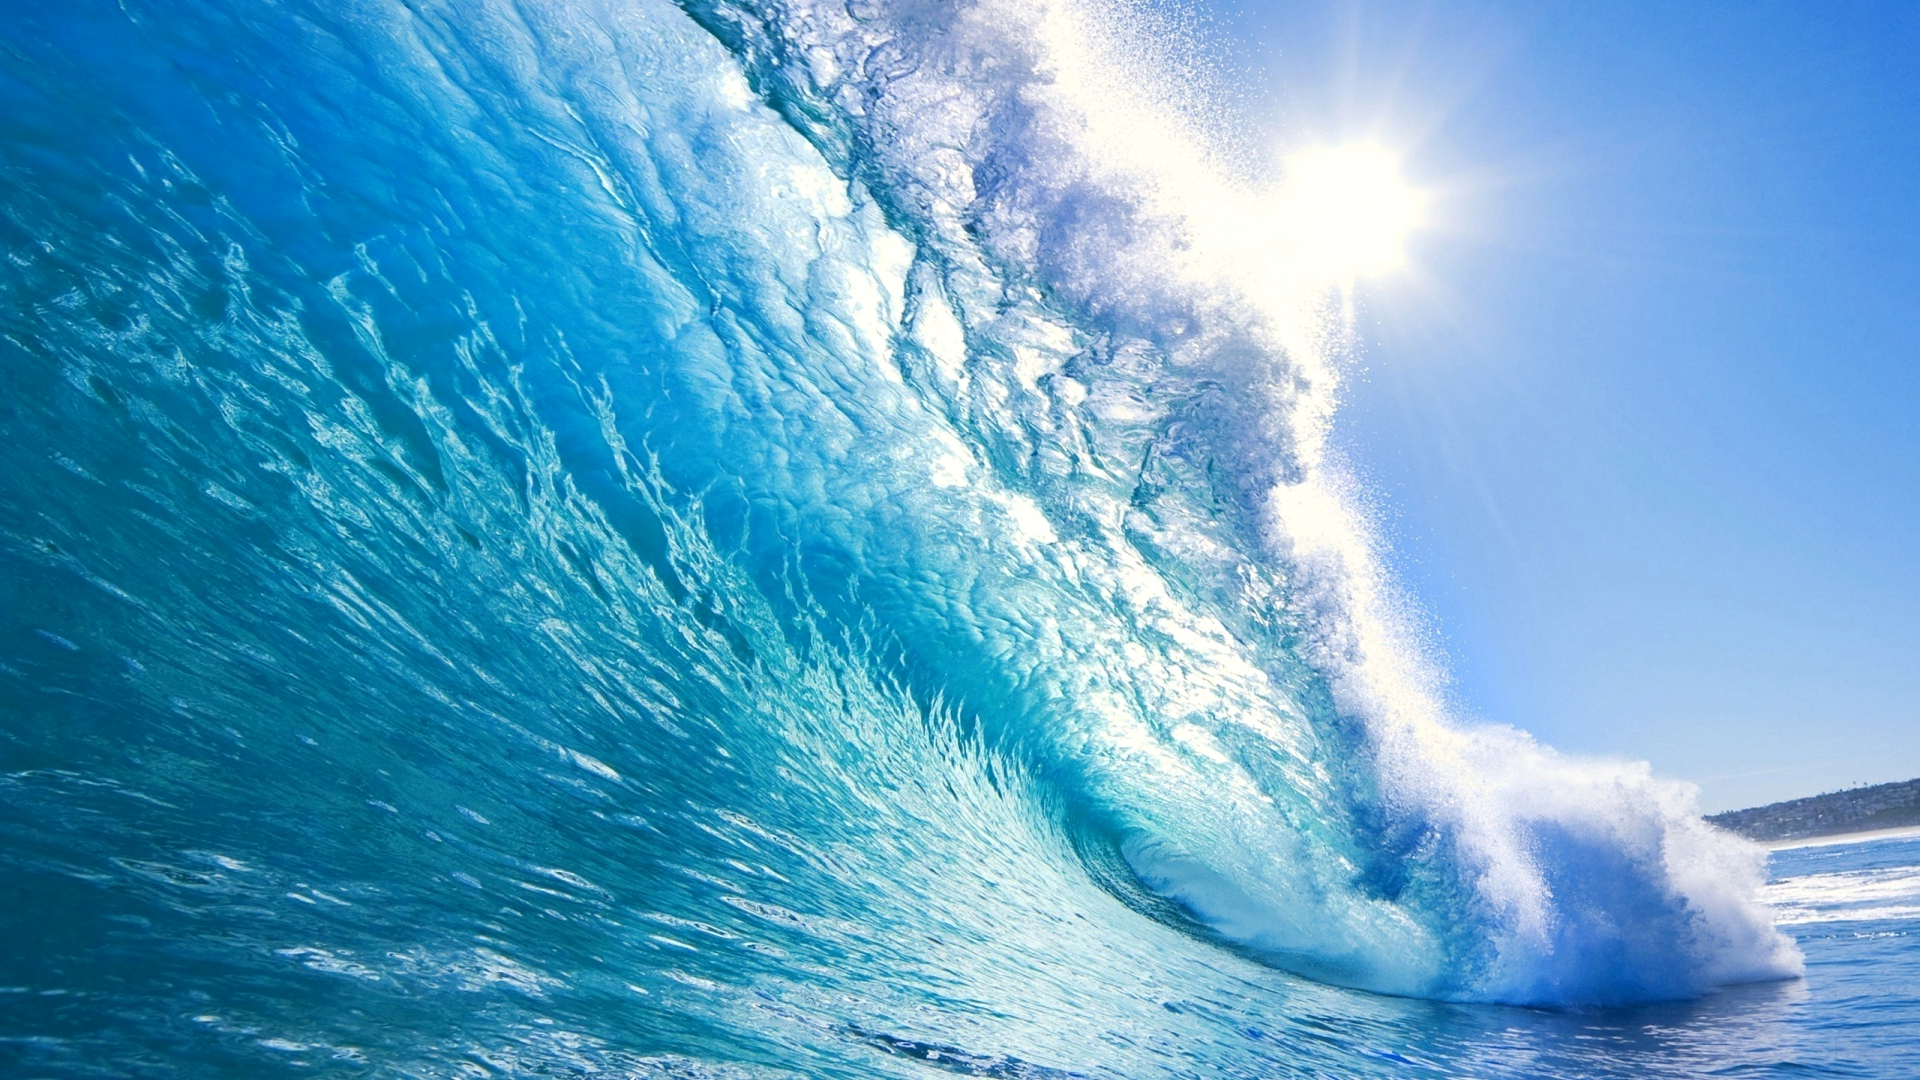 crystal-blue-waves-beach-beautiful-blue-crystal-nature-ocean-pretty-sea-sky-stunning-summer-sun-water-waves